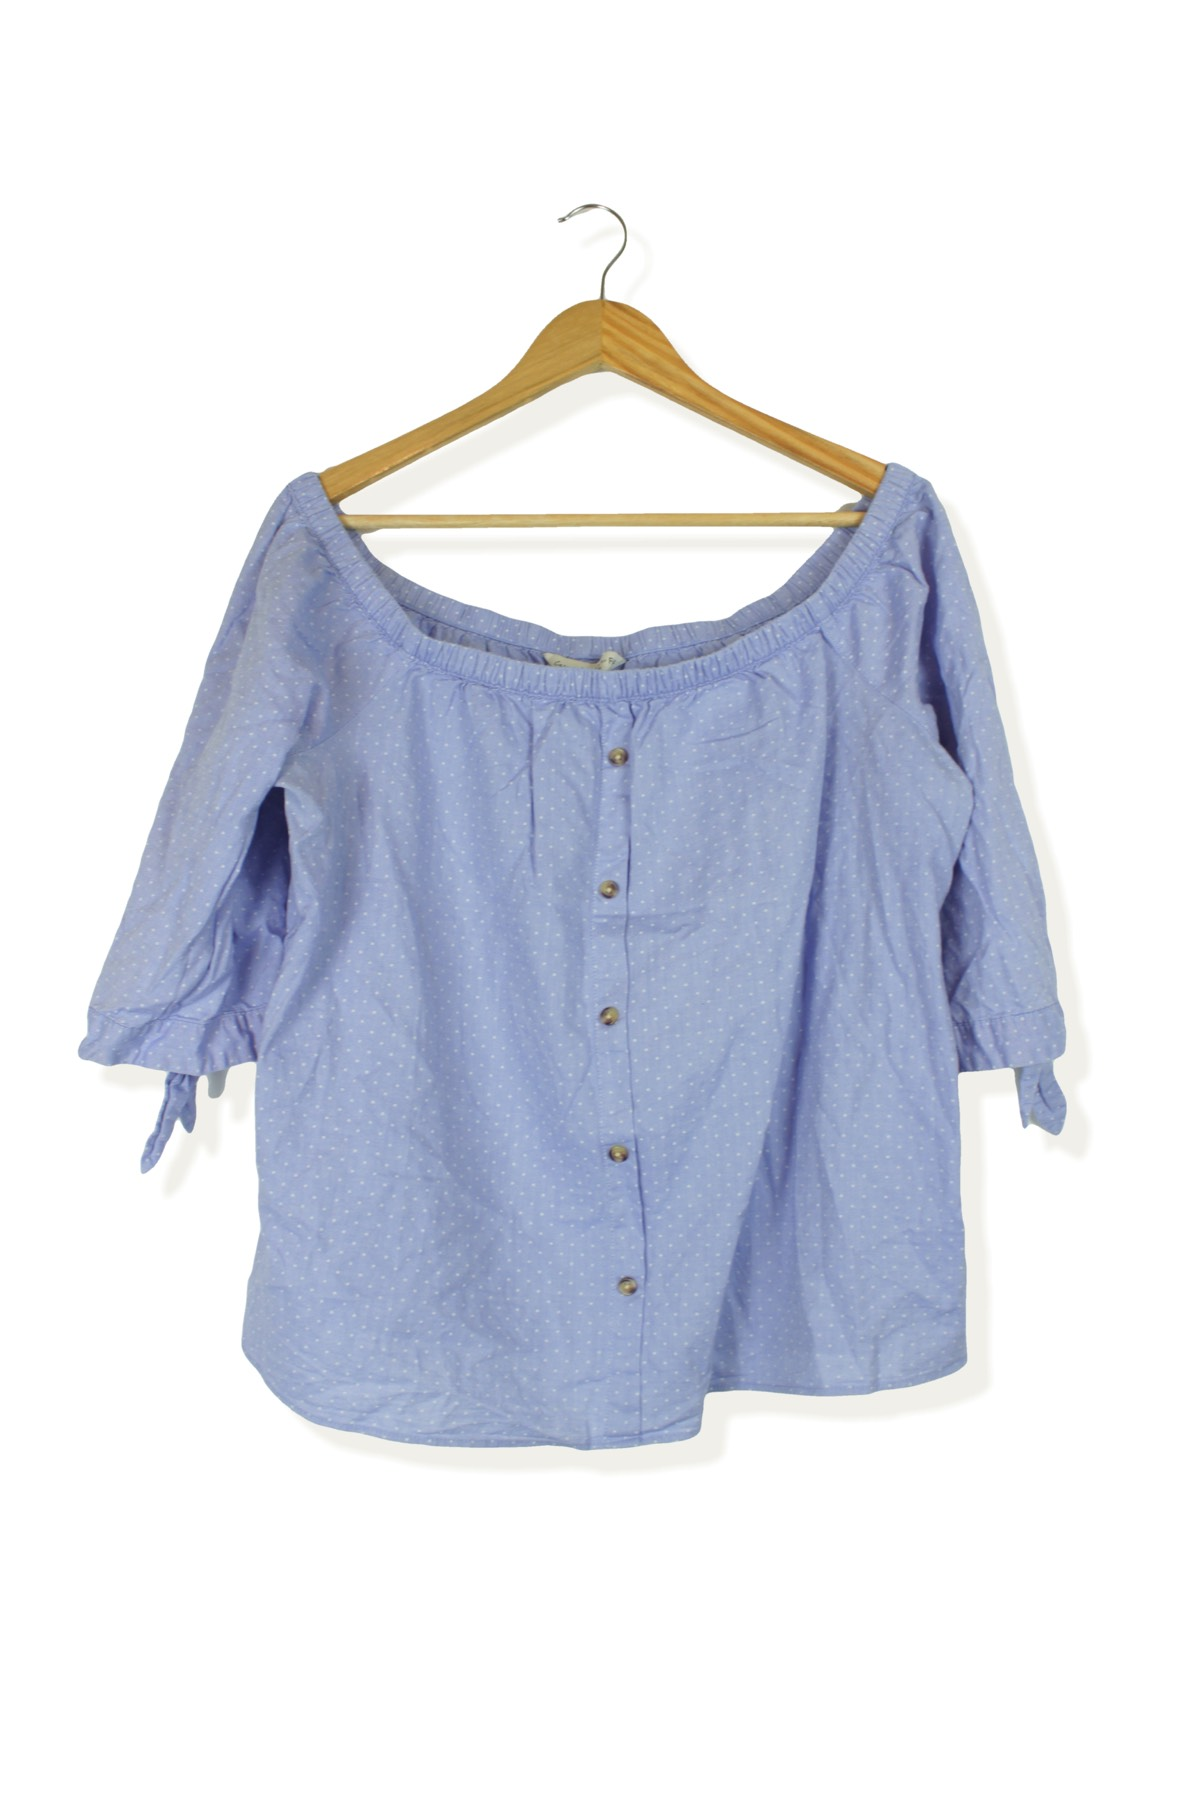 12ba38d4a6607 ... off shoulder bardot summer blouse top Size 16. Sold Out. Previous. F F  Second-Hand Clothing